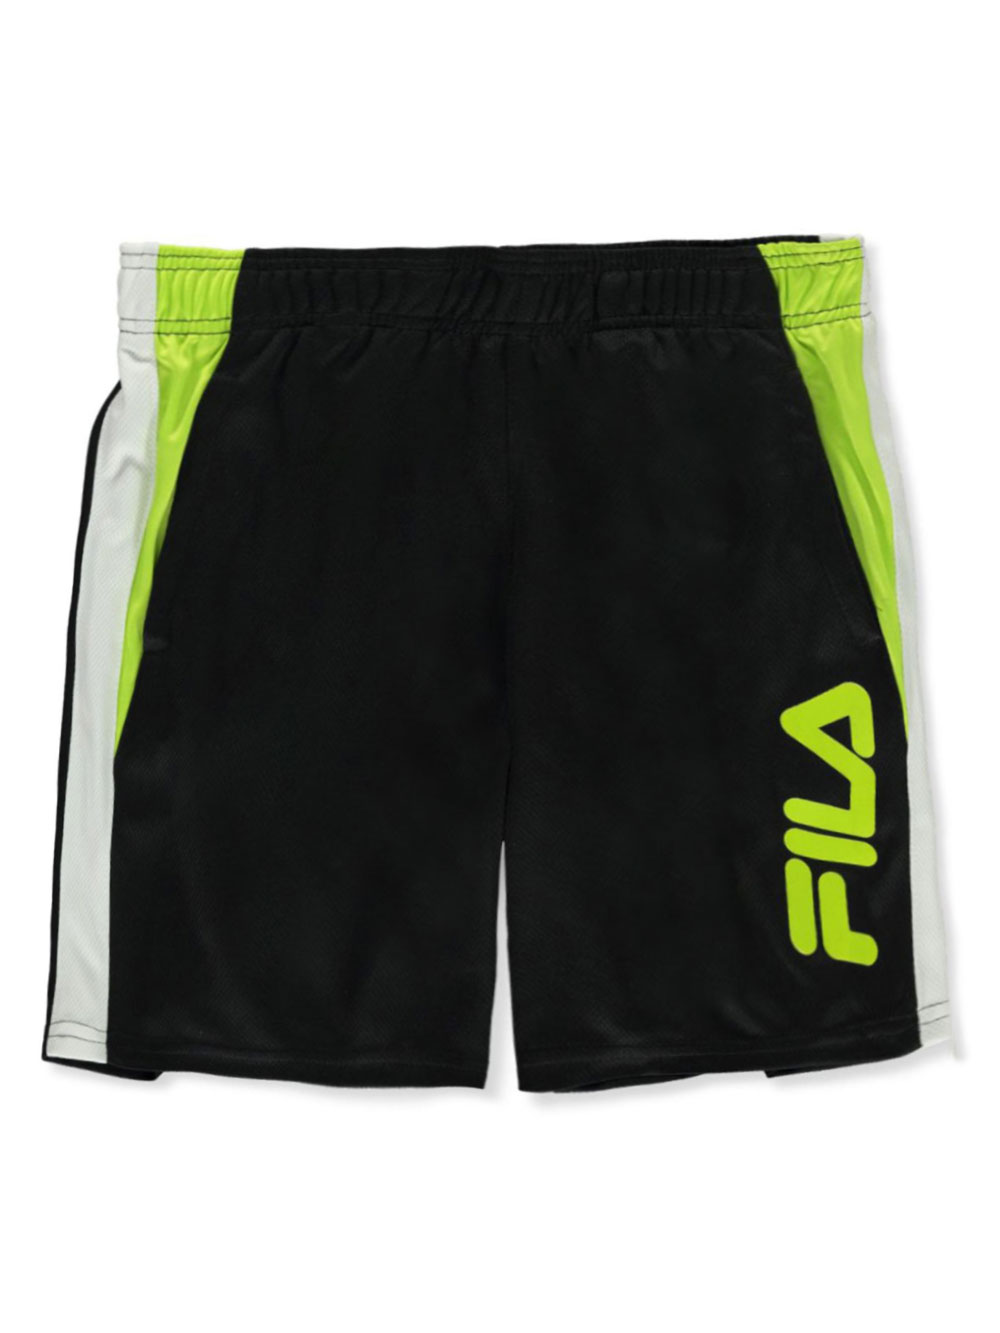 Boys' Mesh Performance Shorts